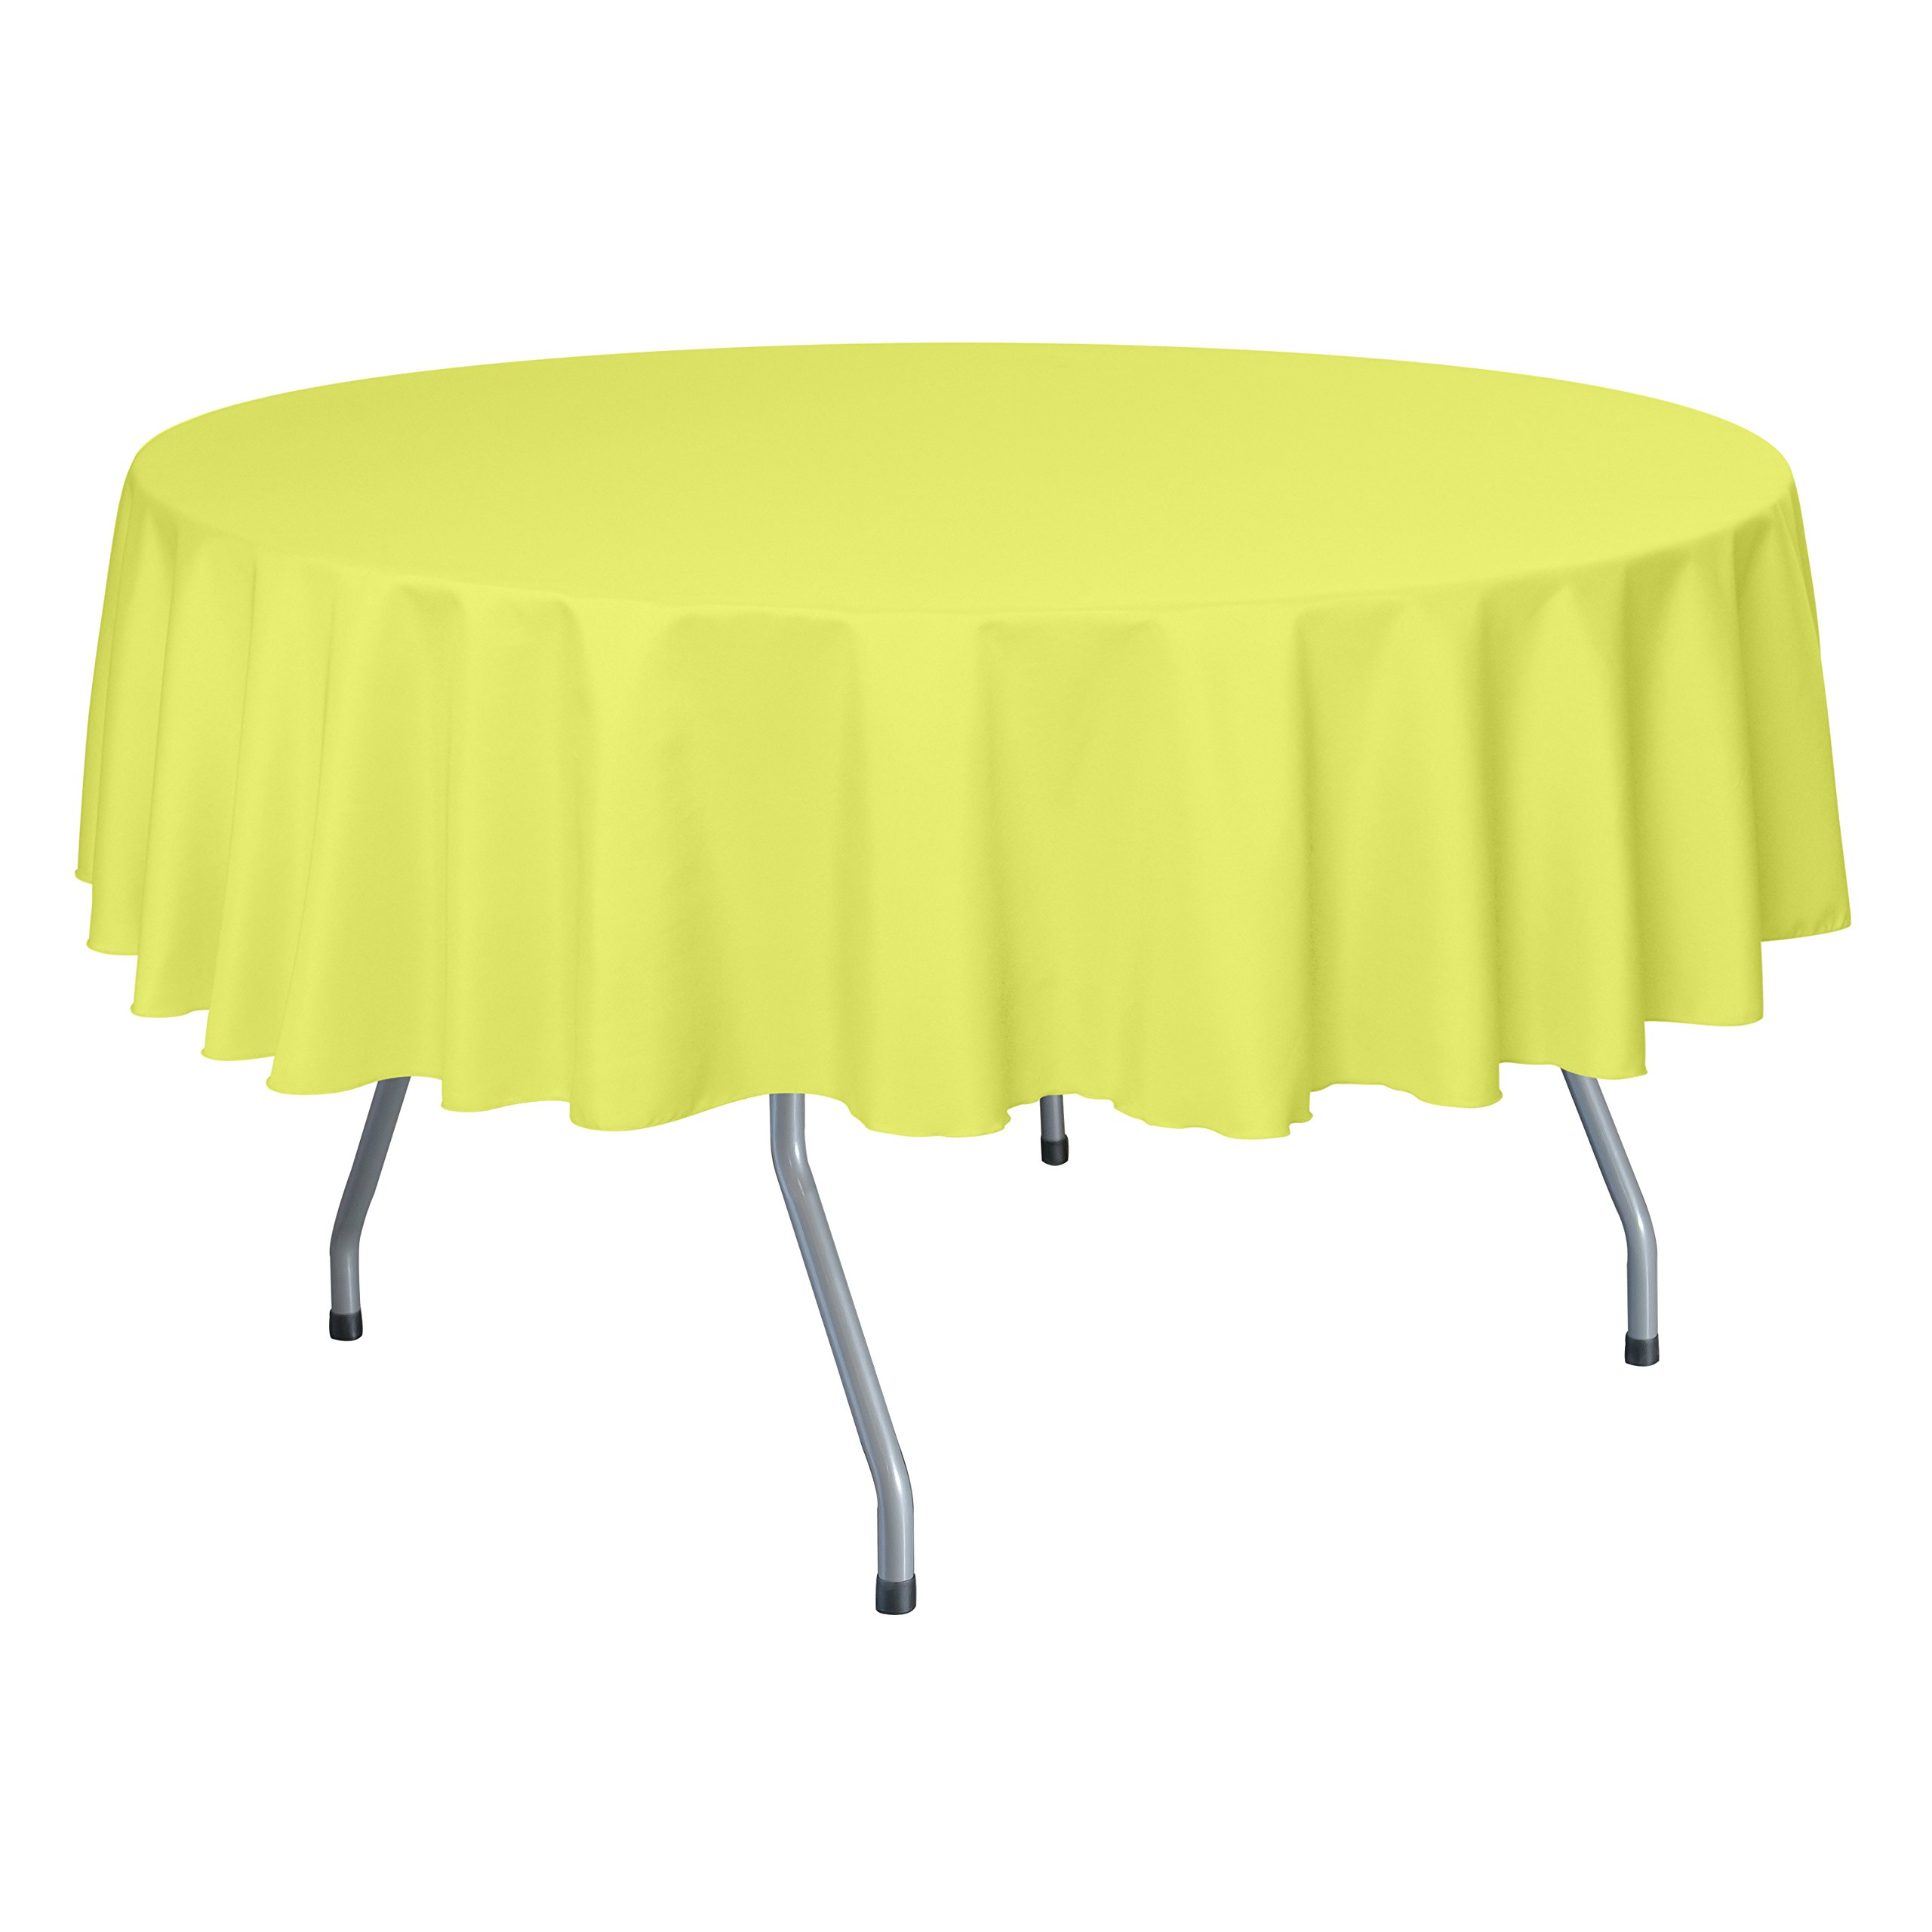 Ultimate Textile (55 Pack) 70-Inch Round Polyester Linen Tablecloth - for Wedding, Restaurant or Banquet use, Lemon Yellow